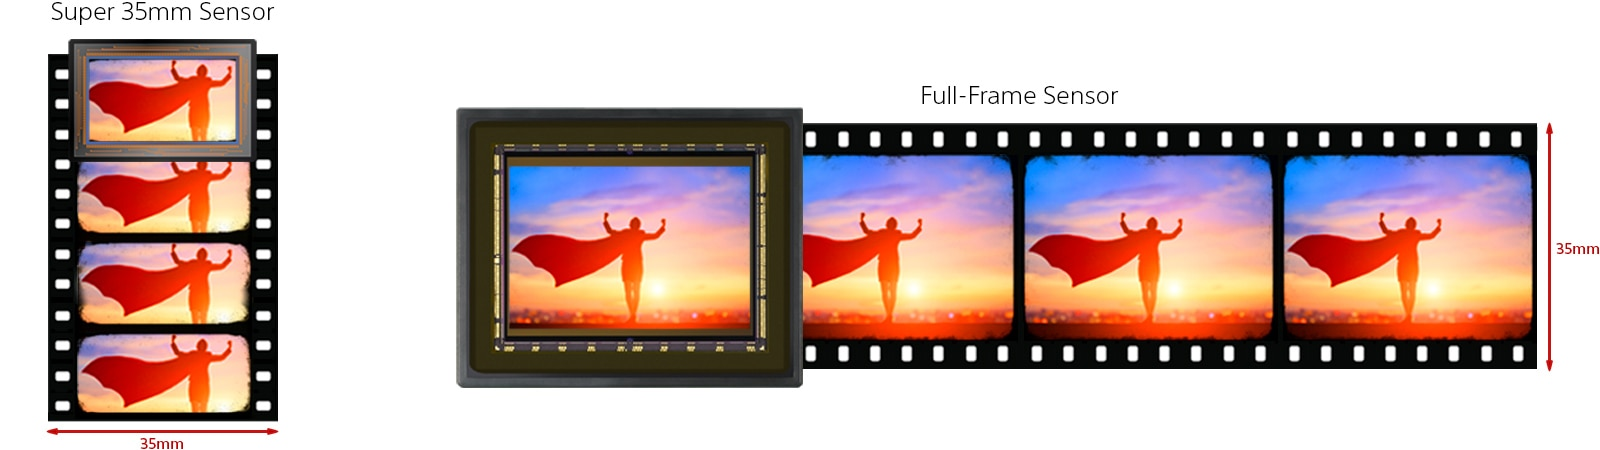 Super 35mm and full-frame sensor sizes compared with 35mm film.